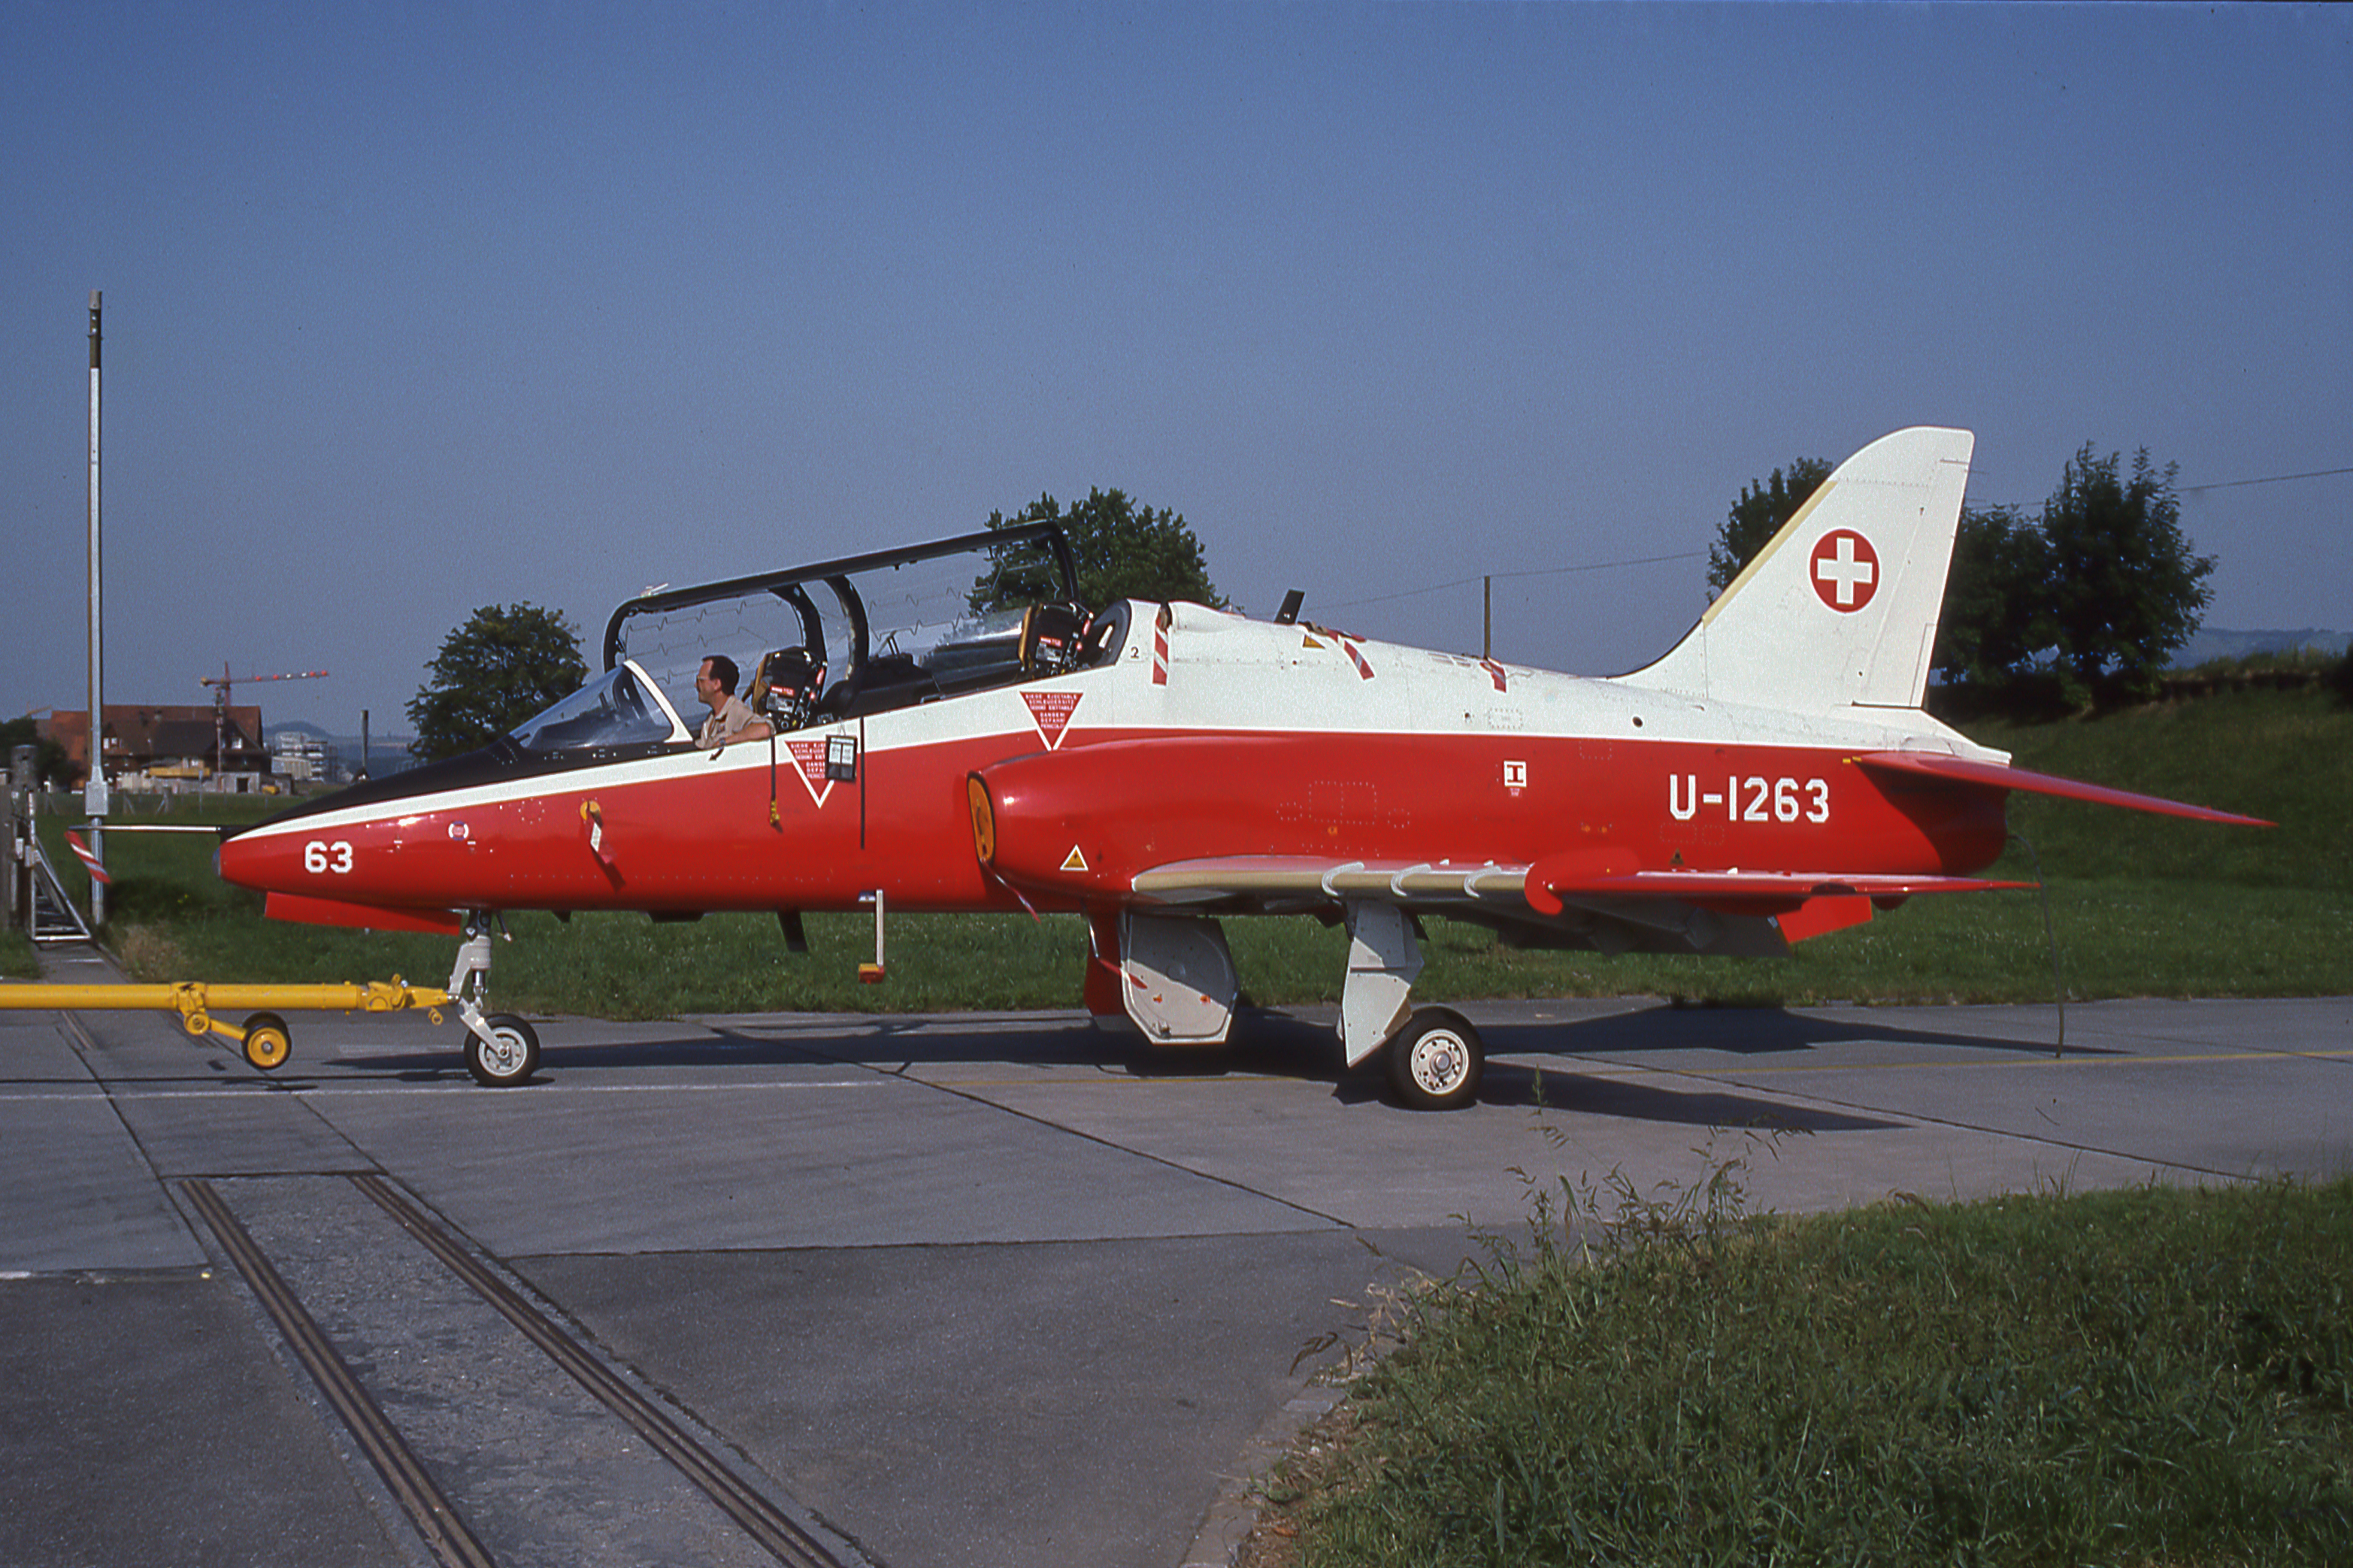 Datei:Swiss Air Force BAe Hawk trainer U-1263.jpg